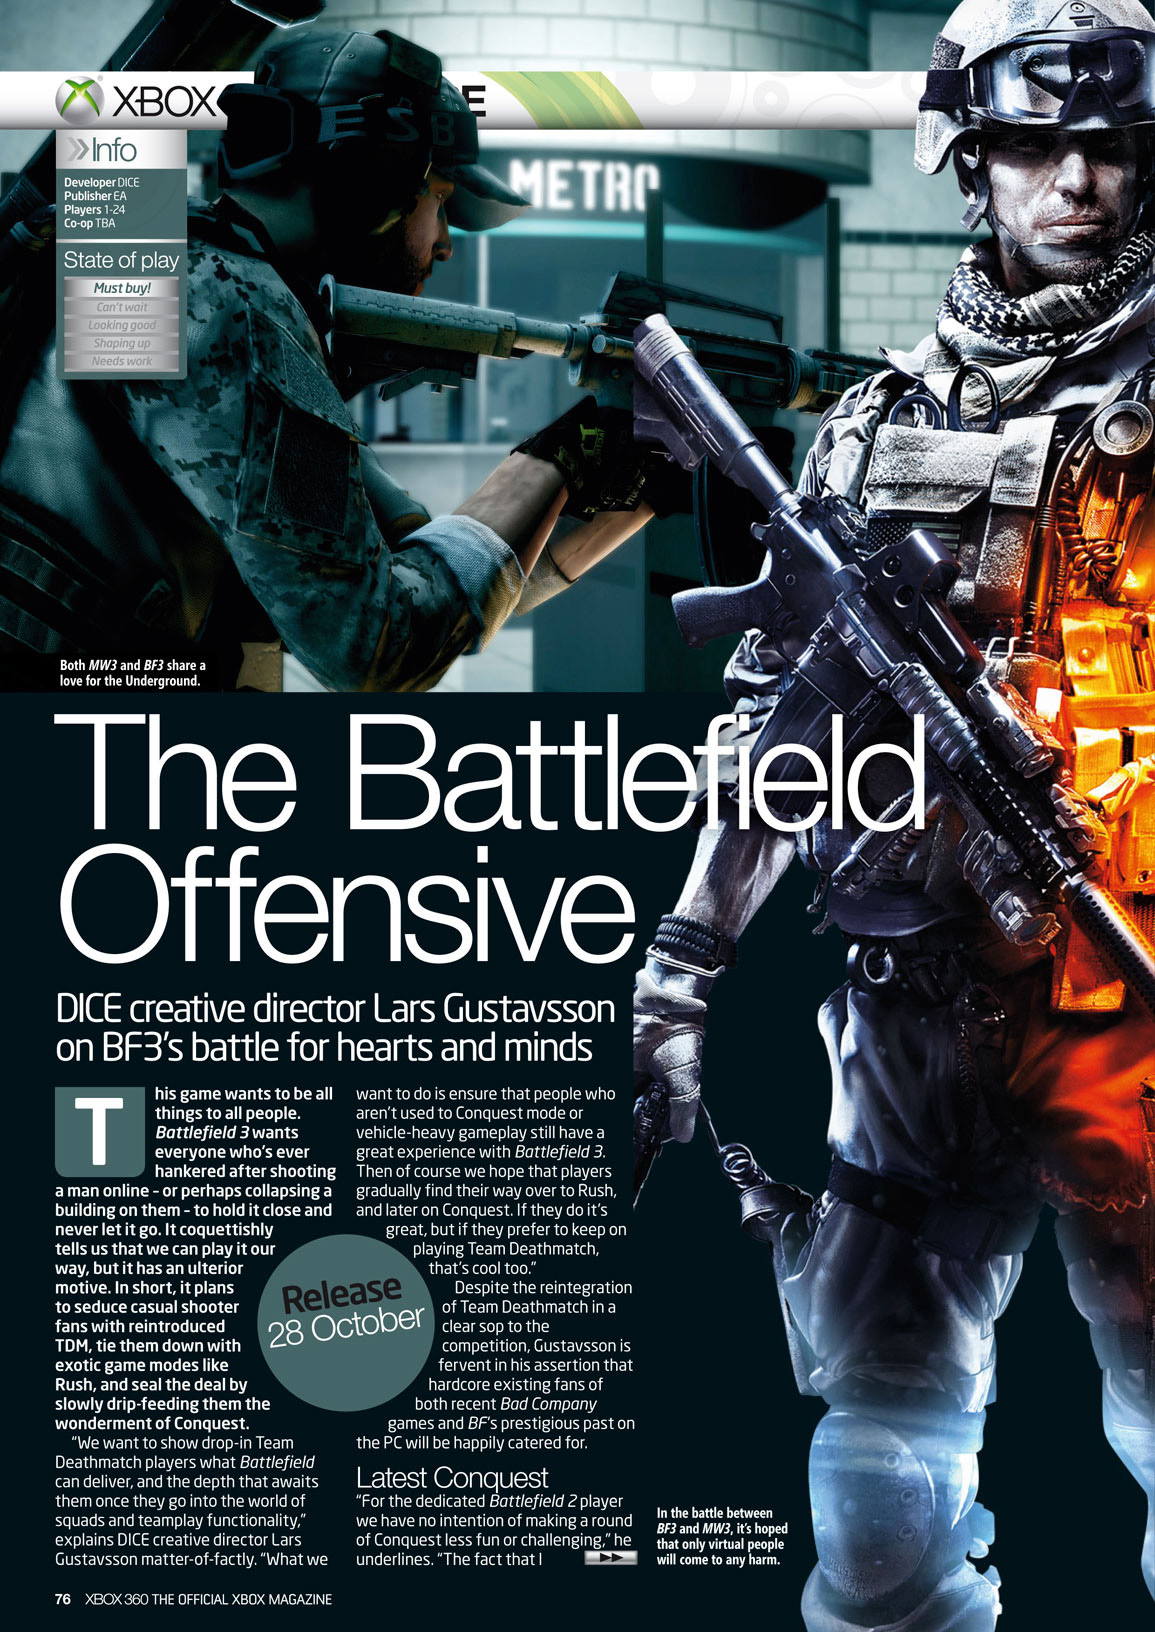 insanecyclone games think right youre played against must hate times lately much pigfckr feel name soldiers free been playing havent though battlefield